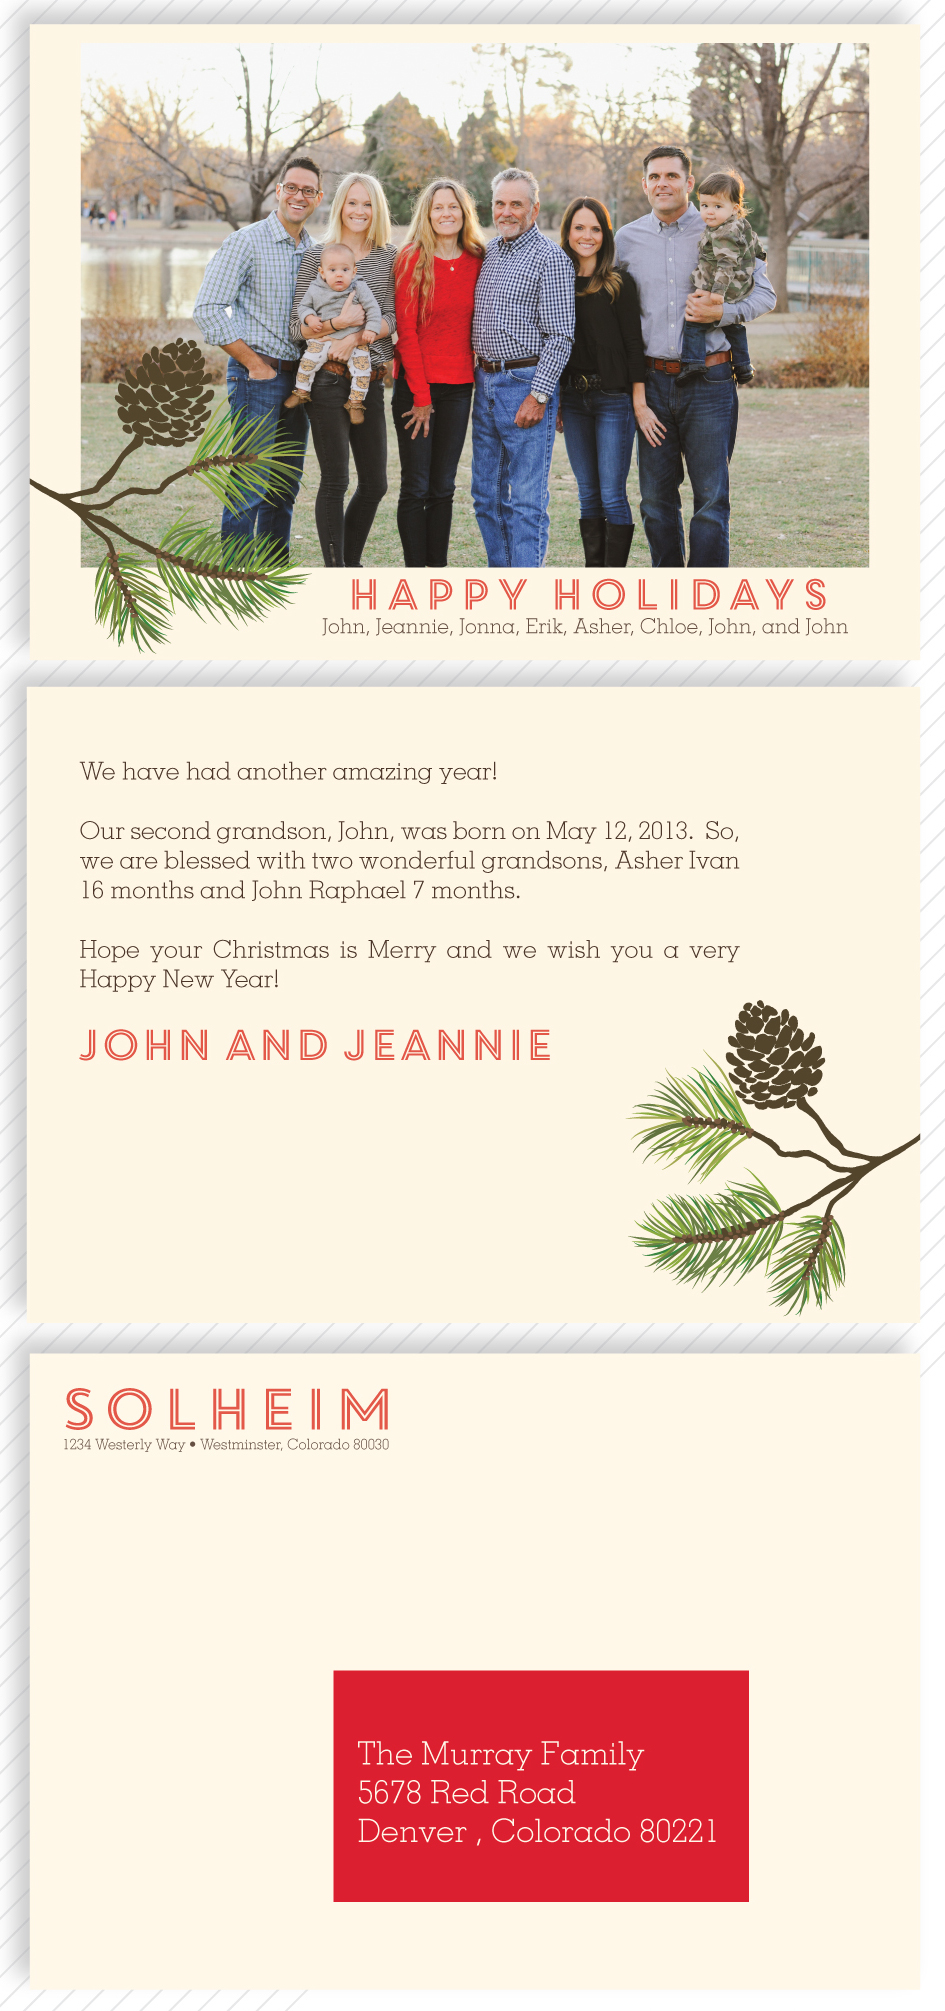 solheim-holiday-card-2013-blog-flickr.jpg